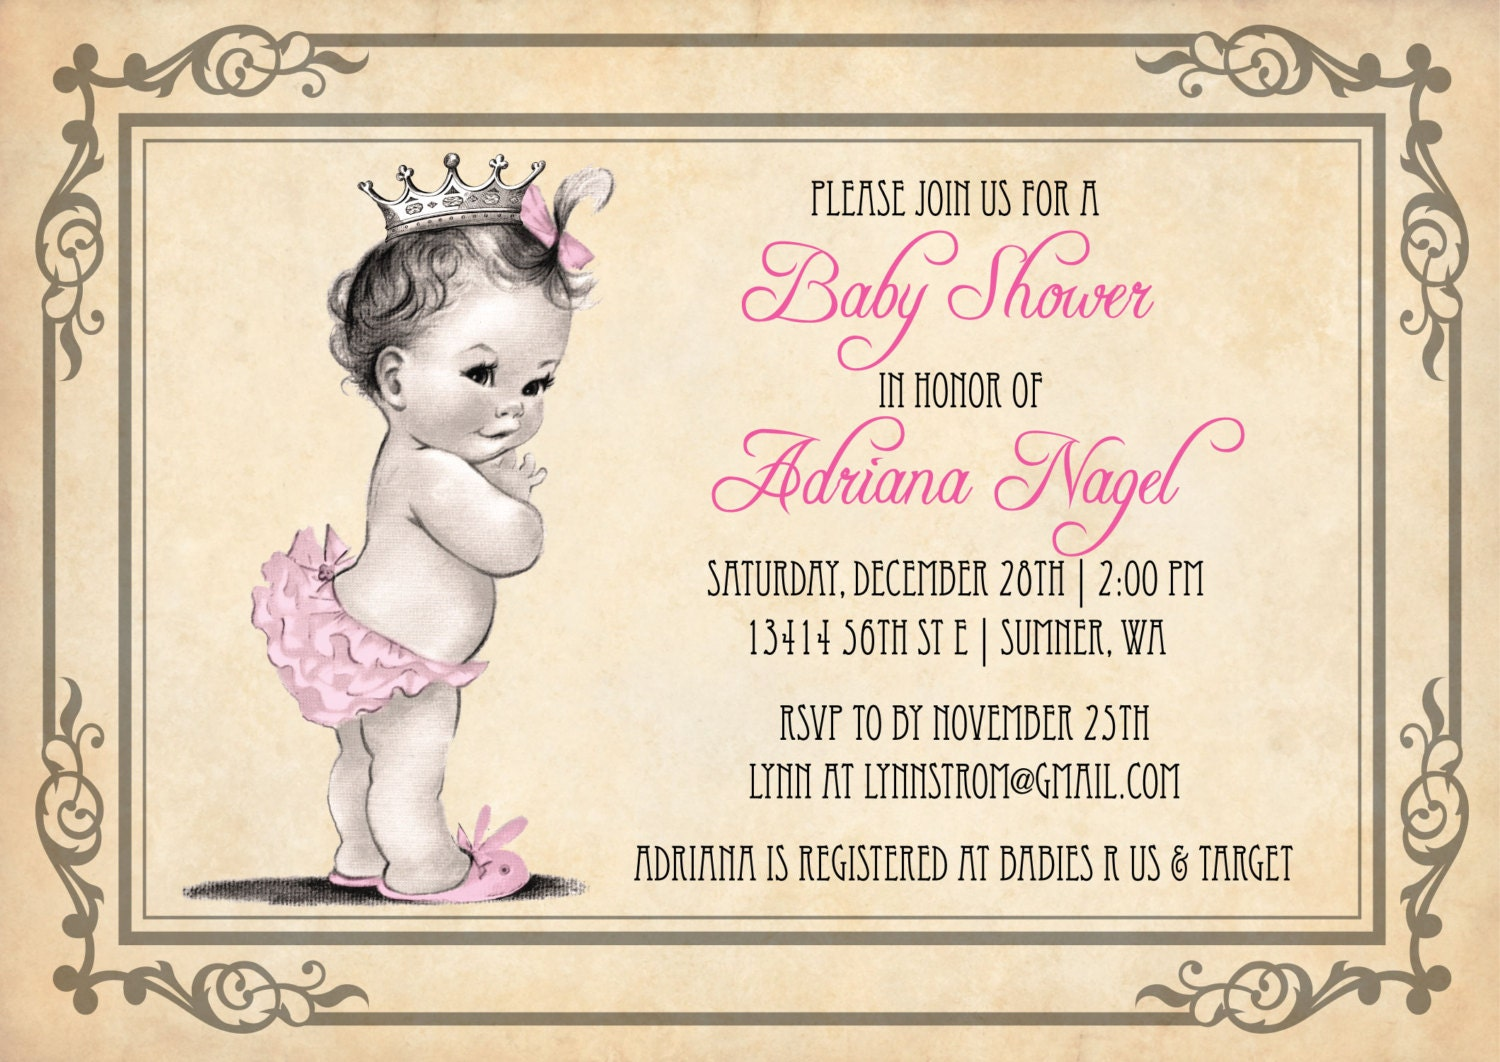 Baby Shower Invitation For Girl and get inspiration to create nice invitation ideas